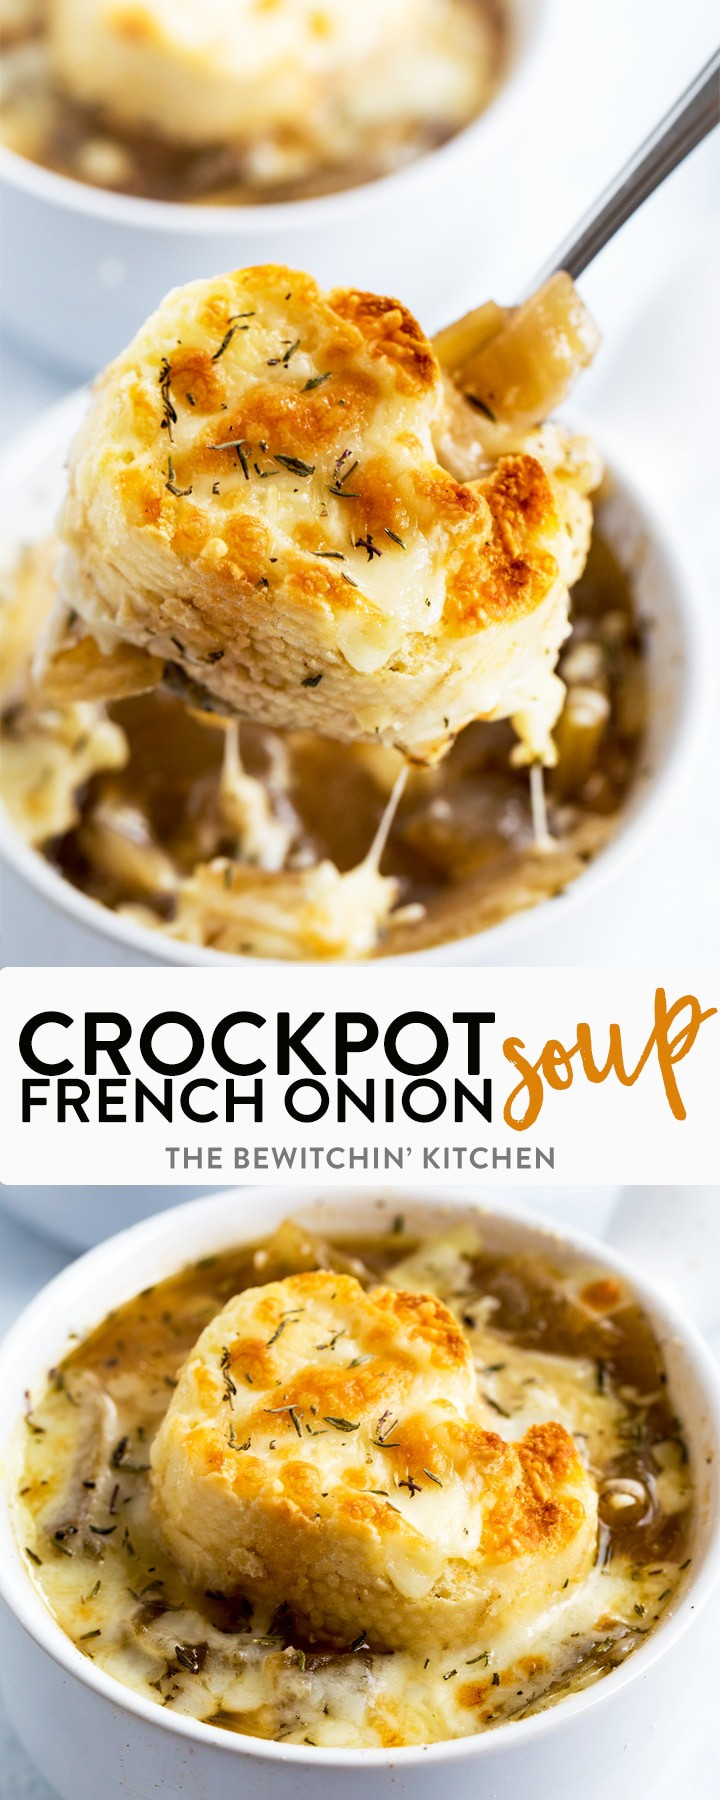 Slowcooker French Onion Soup - this homemade crockpot soup recipe is fast to put together and super yummy! An easy slow cooker soup with minimal ingredients that is topped with a french baguette, mozzarella. A perfect Crockpot dump meal that tastes like you slaved in the kitchen all day! #thebewitchinkitchen #slowcookerfrenchonionsoup #frenchonionsoup #homemadefrenchonionsoup #crockpotfrenchonionsoup #souprecipes #homemadesoup